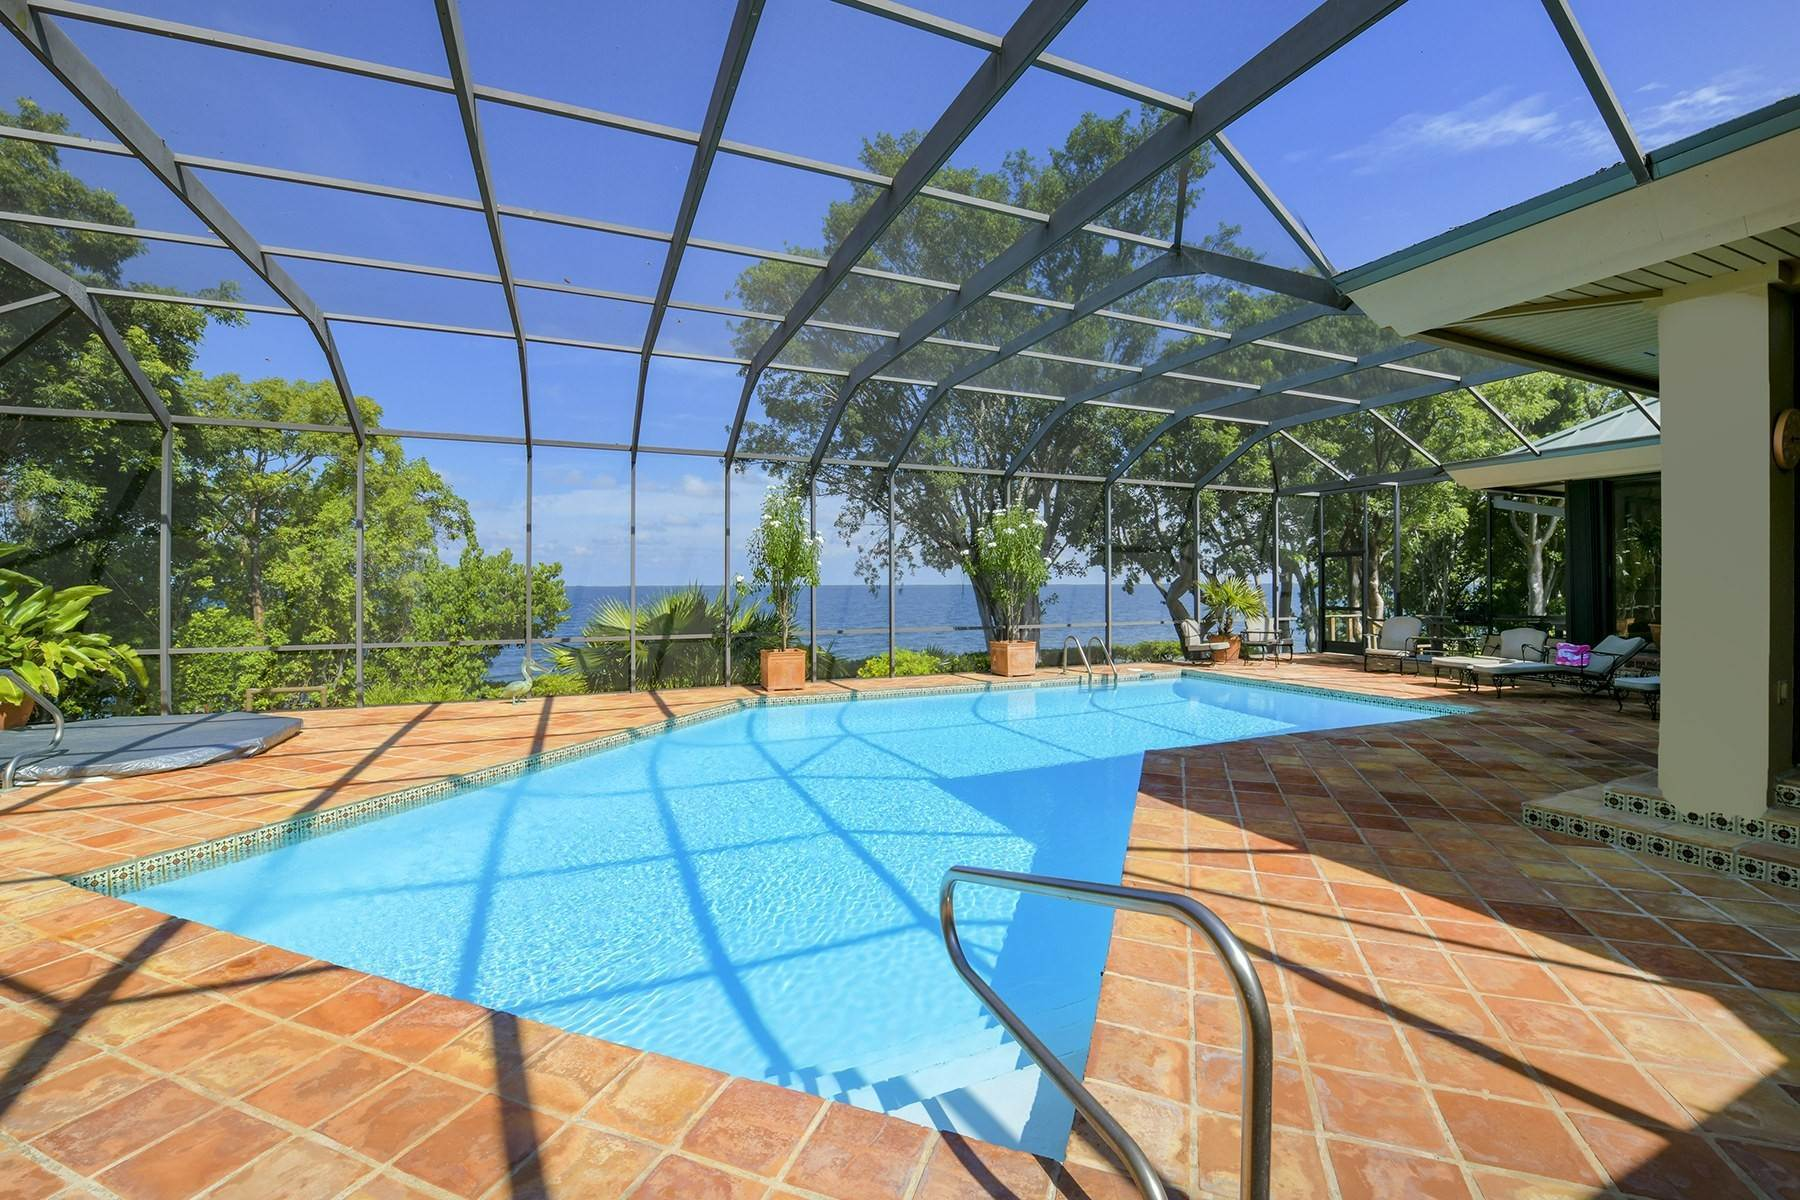 32. Property for Sale at 10 Cannon Point, Key Largo, FL Key Largo, Florida 33037 United States